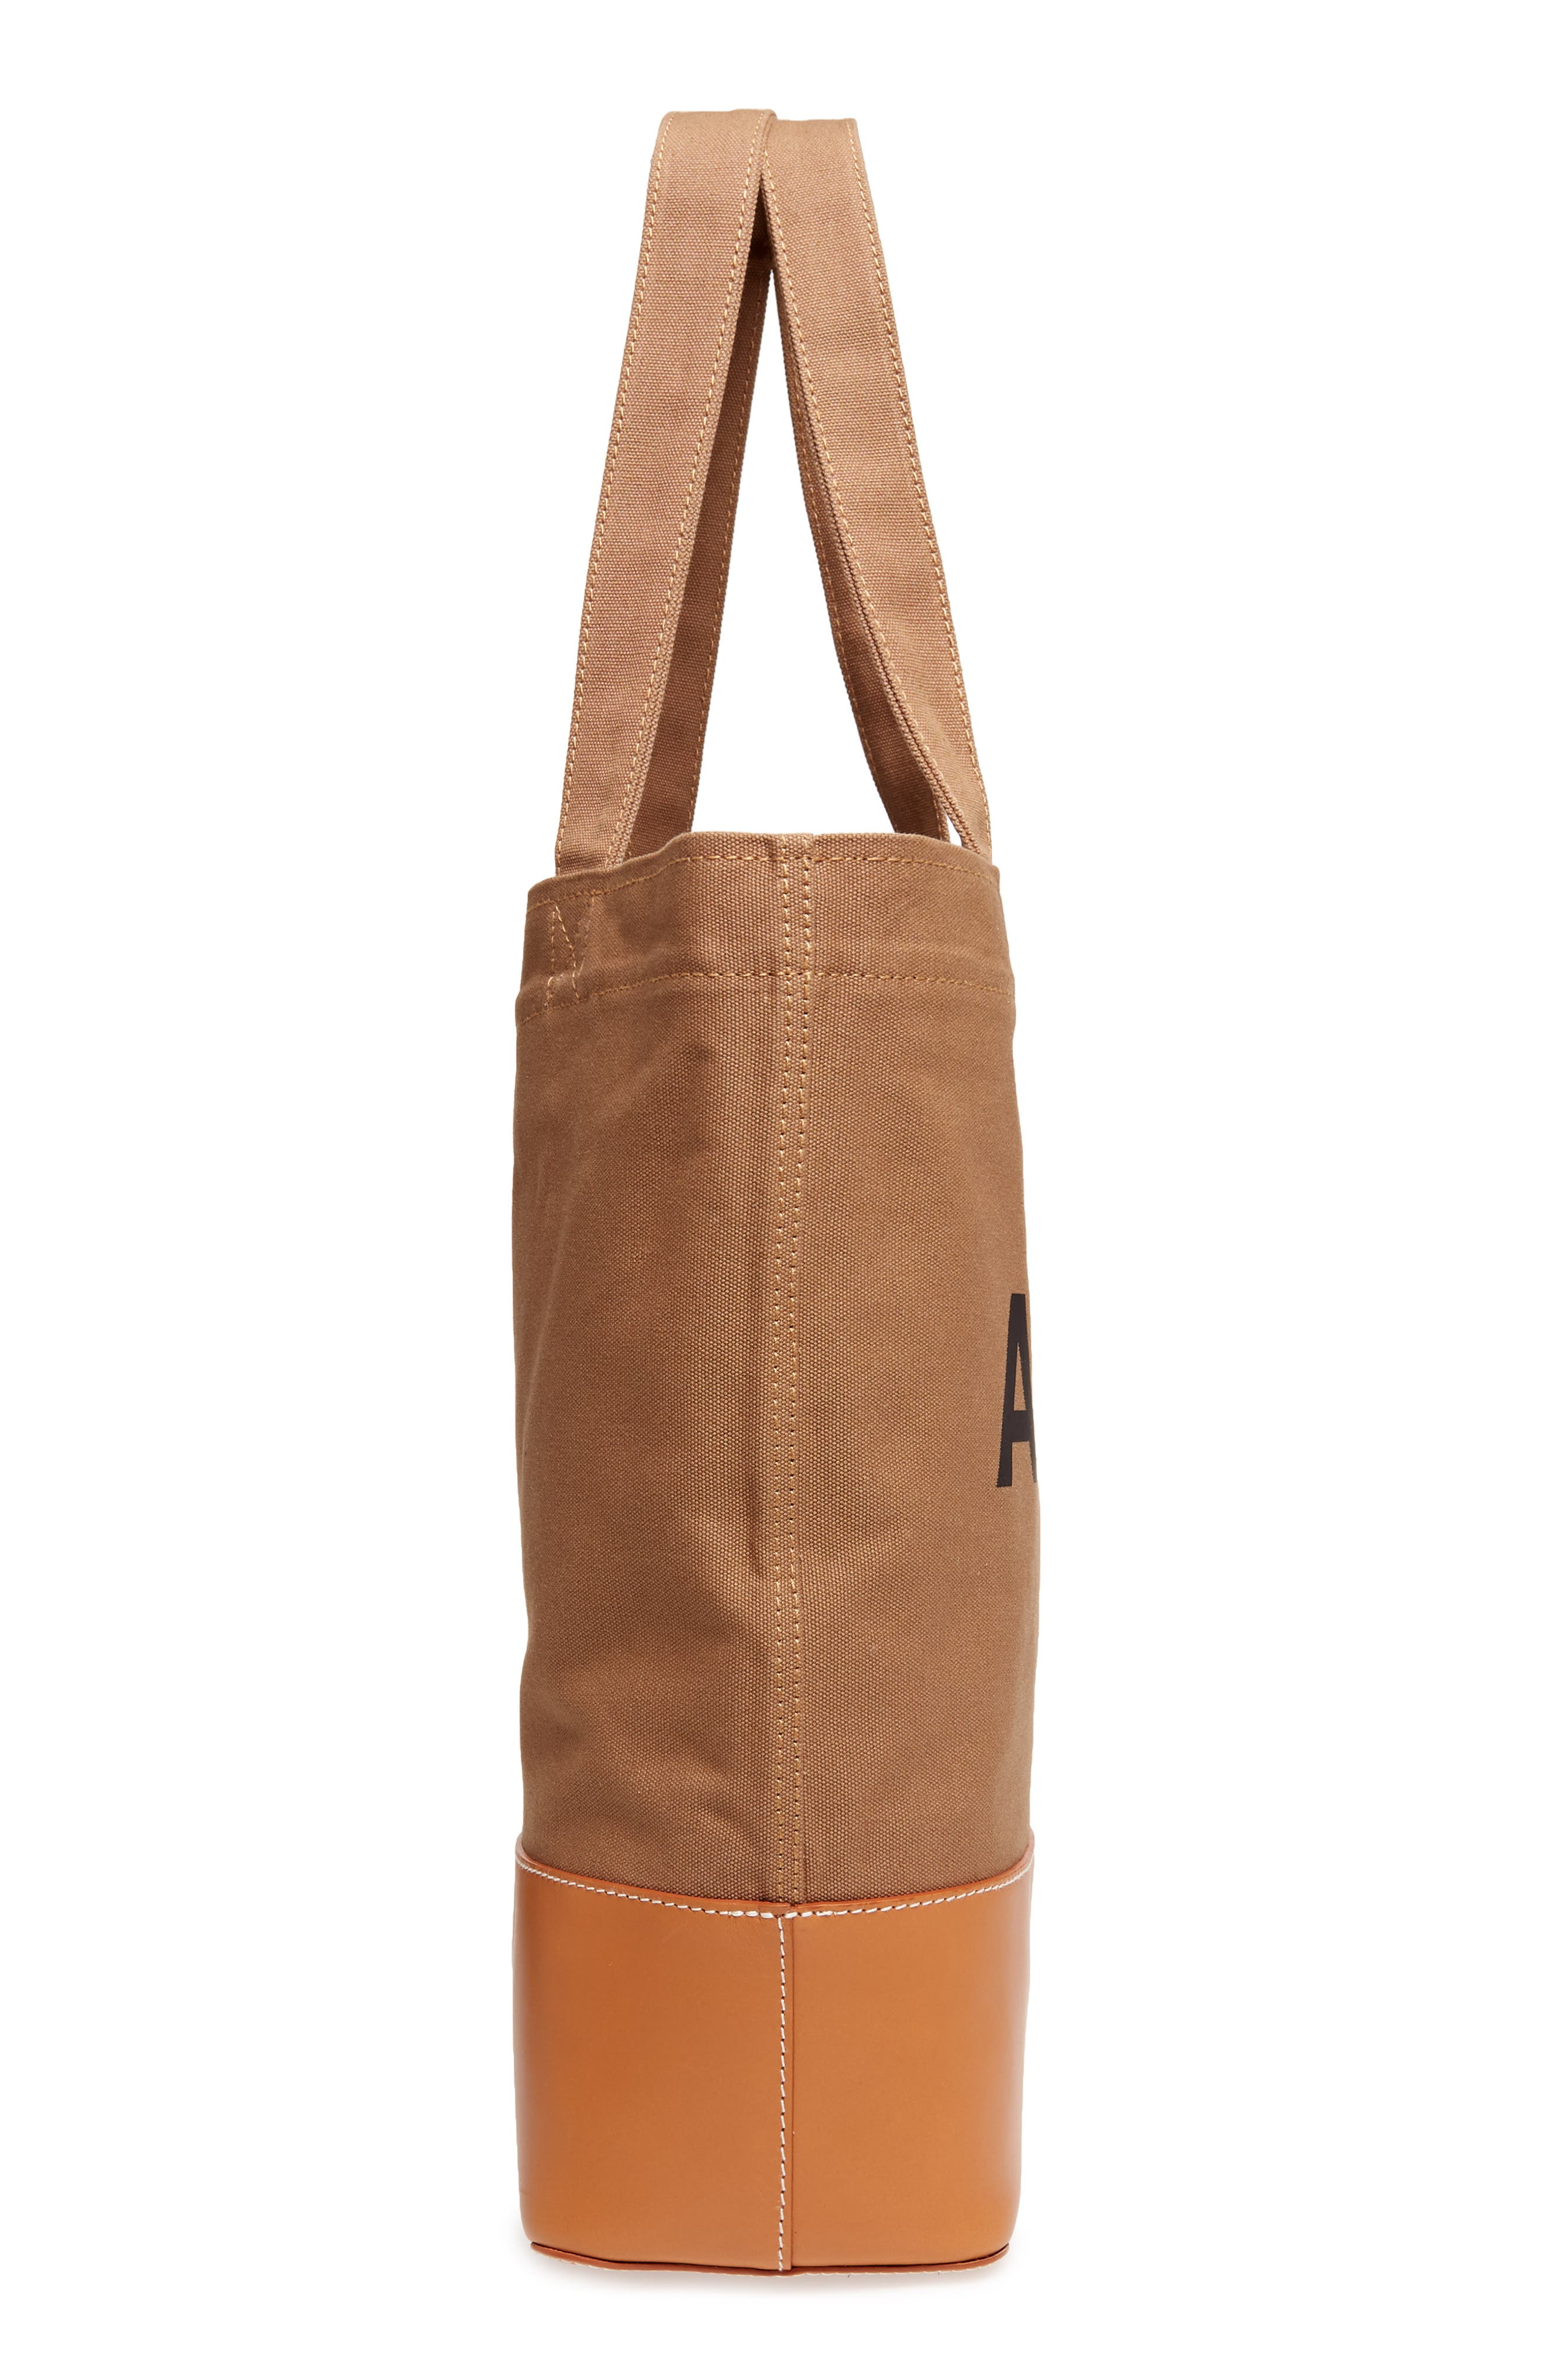 Cabas Axel Canvas & Leather Tote,                             Alternate thumbnail 5, color,                             KAKI CLAIR